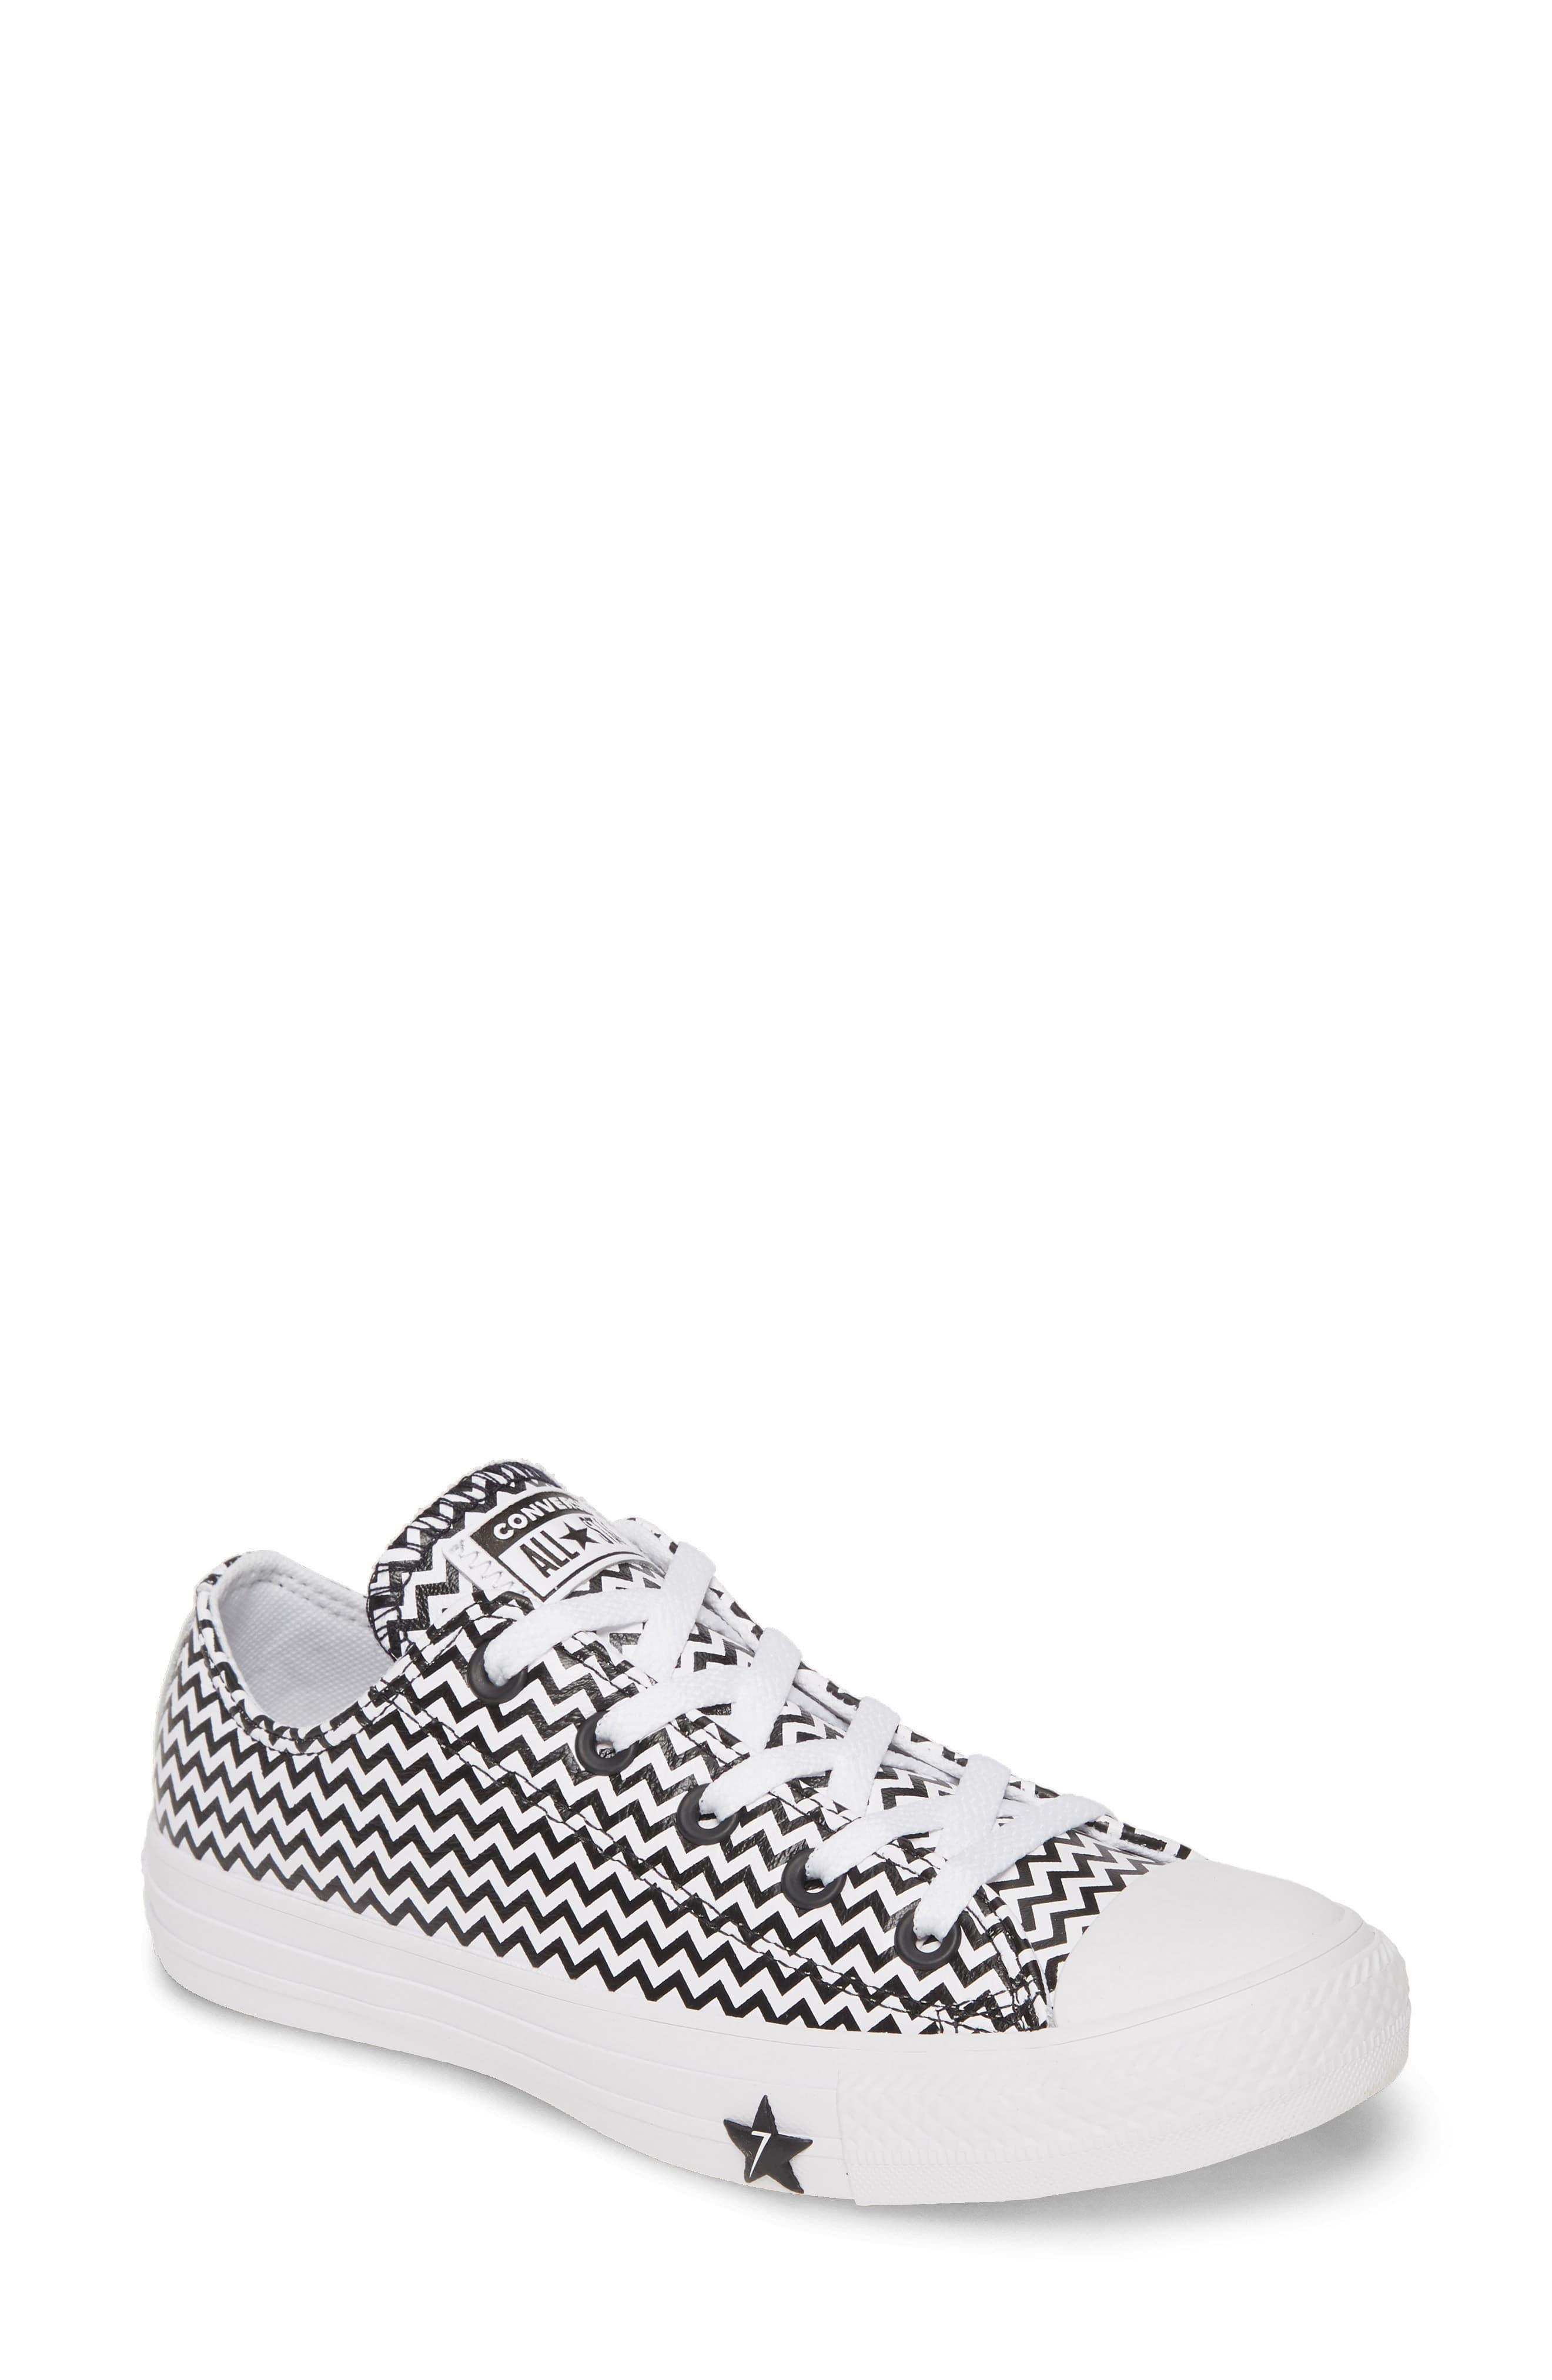 Converse Converse Chuck Taylor All Star Mission V Ox (WhiteConverse BlackWhite) Women's Shoes from Zappos | ShapeShop